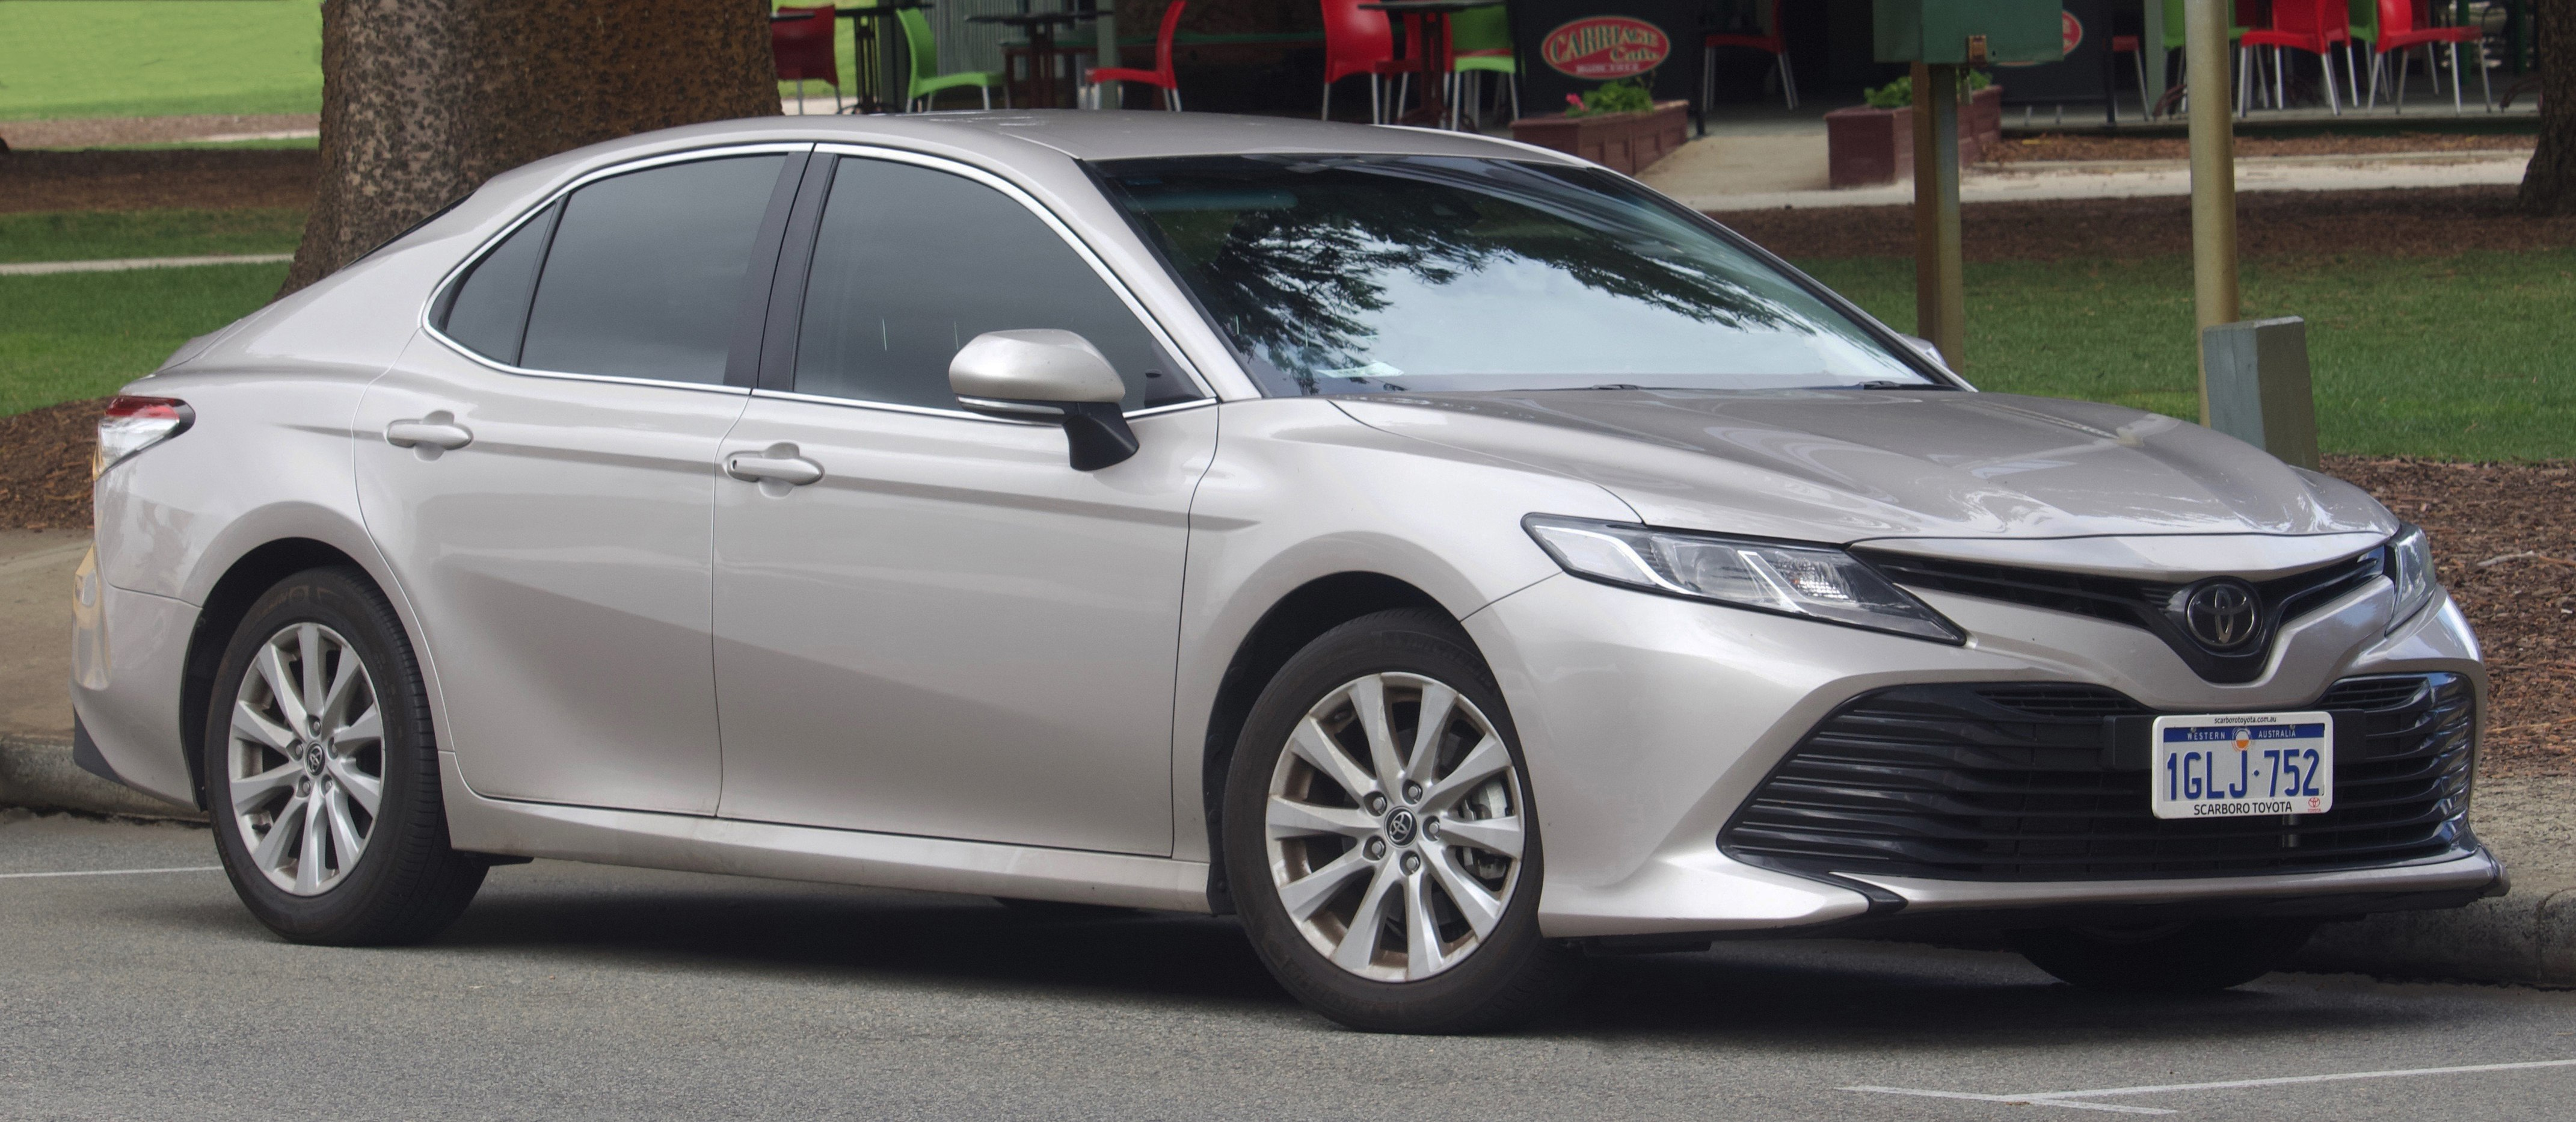 Toyota camry the complete information and online sale with free toyota camry the complete information and online sale with free shipping order and buy now for the lowest price in the best online store fandeluxe Image collections